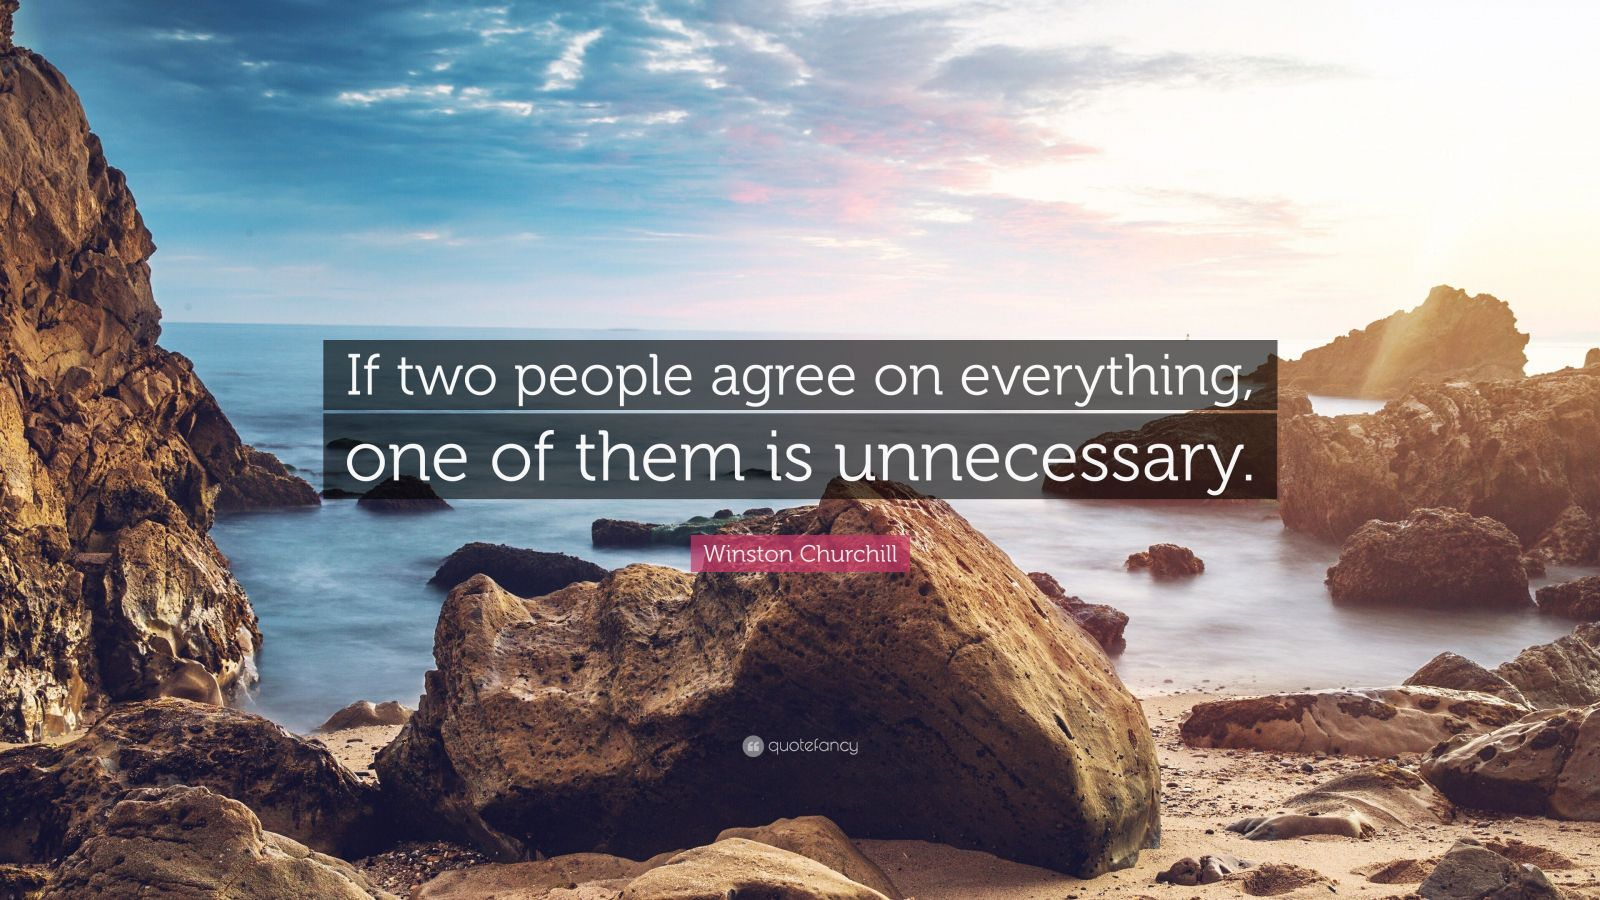 """Winston Churchill Quote: """"If two people agree on everything, one of them is unnecessary."""""""